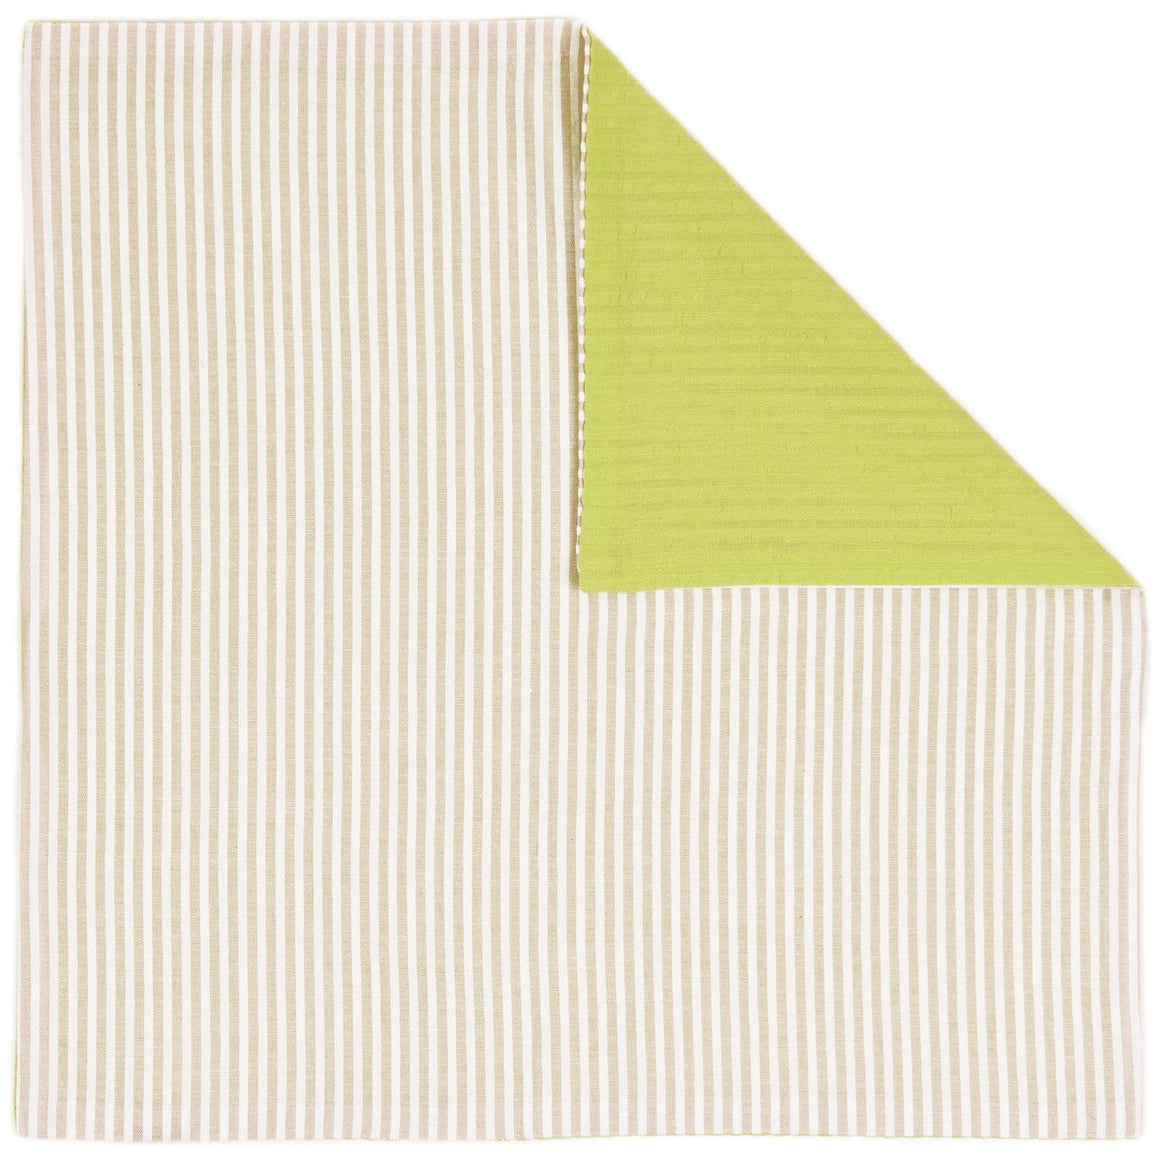 Lime Tan Seersucker Pocket Square